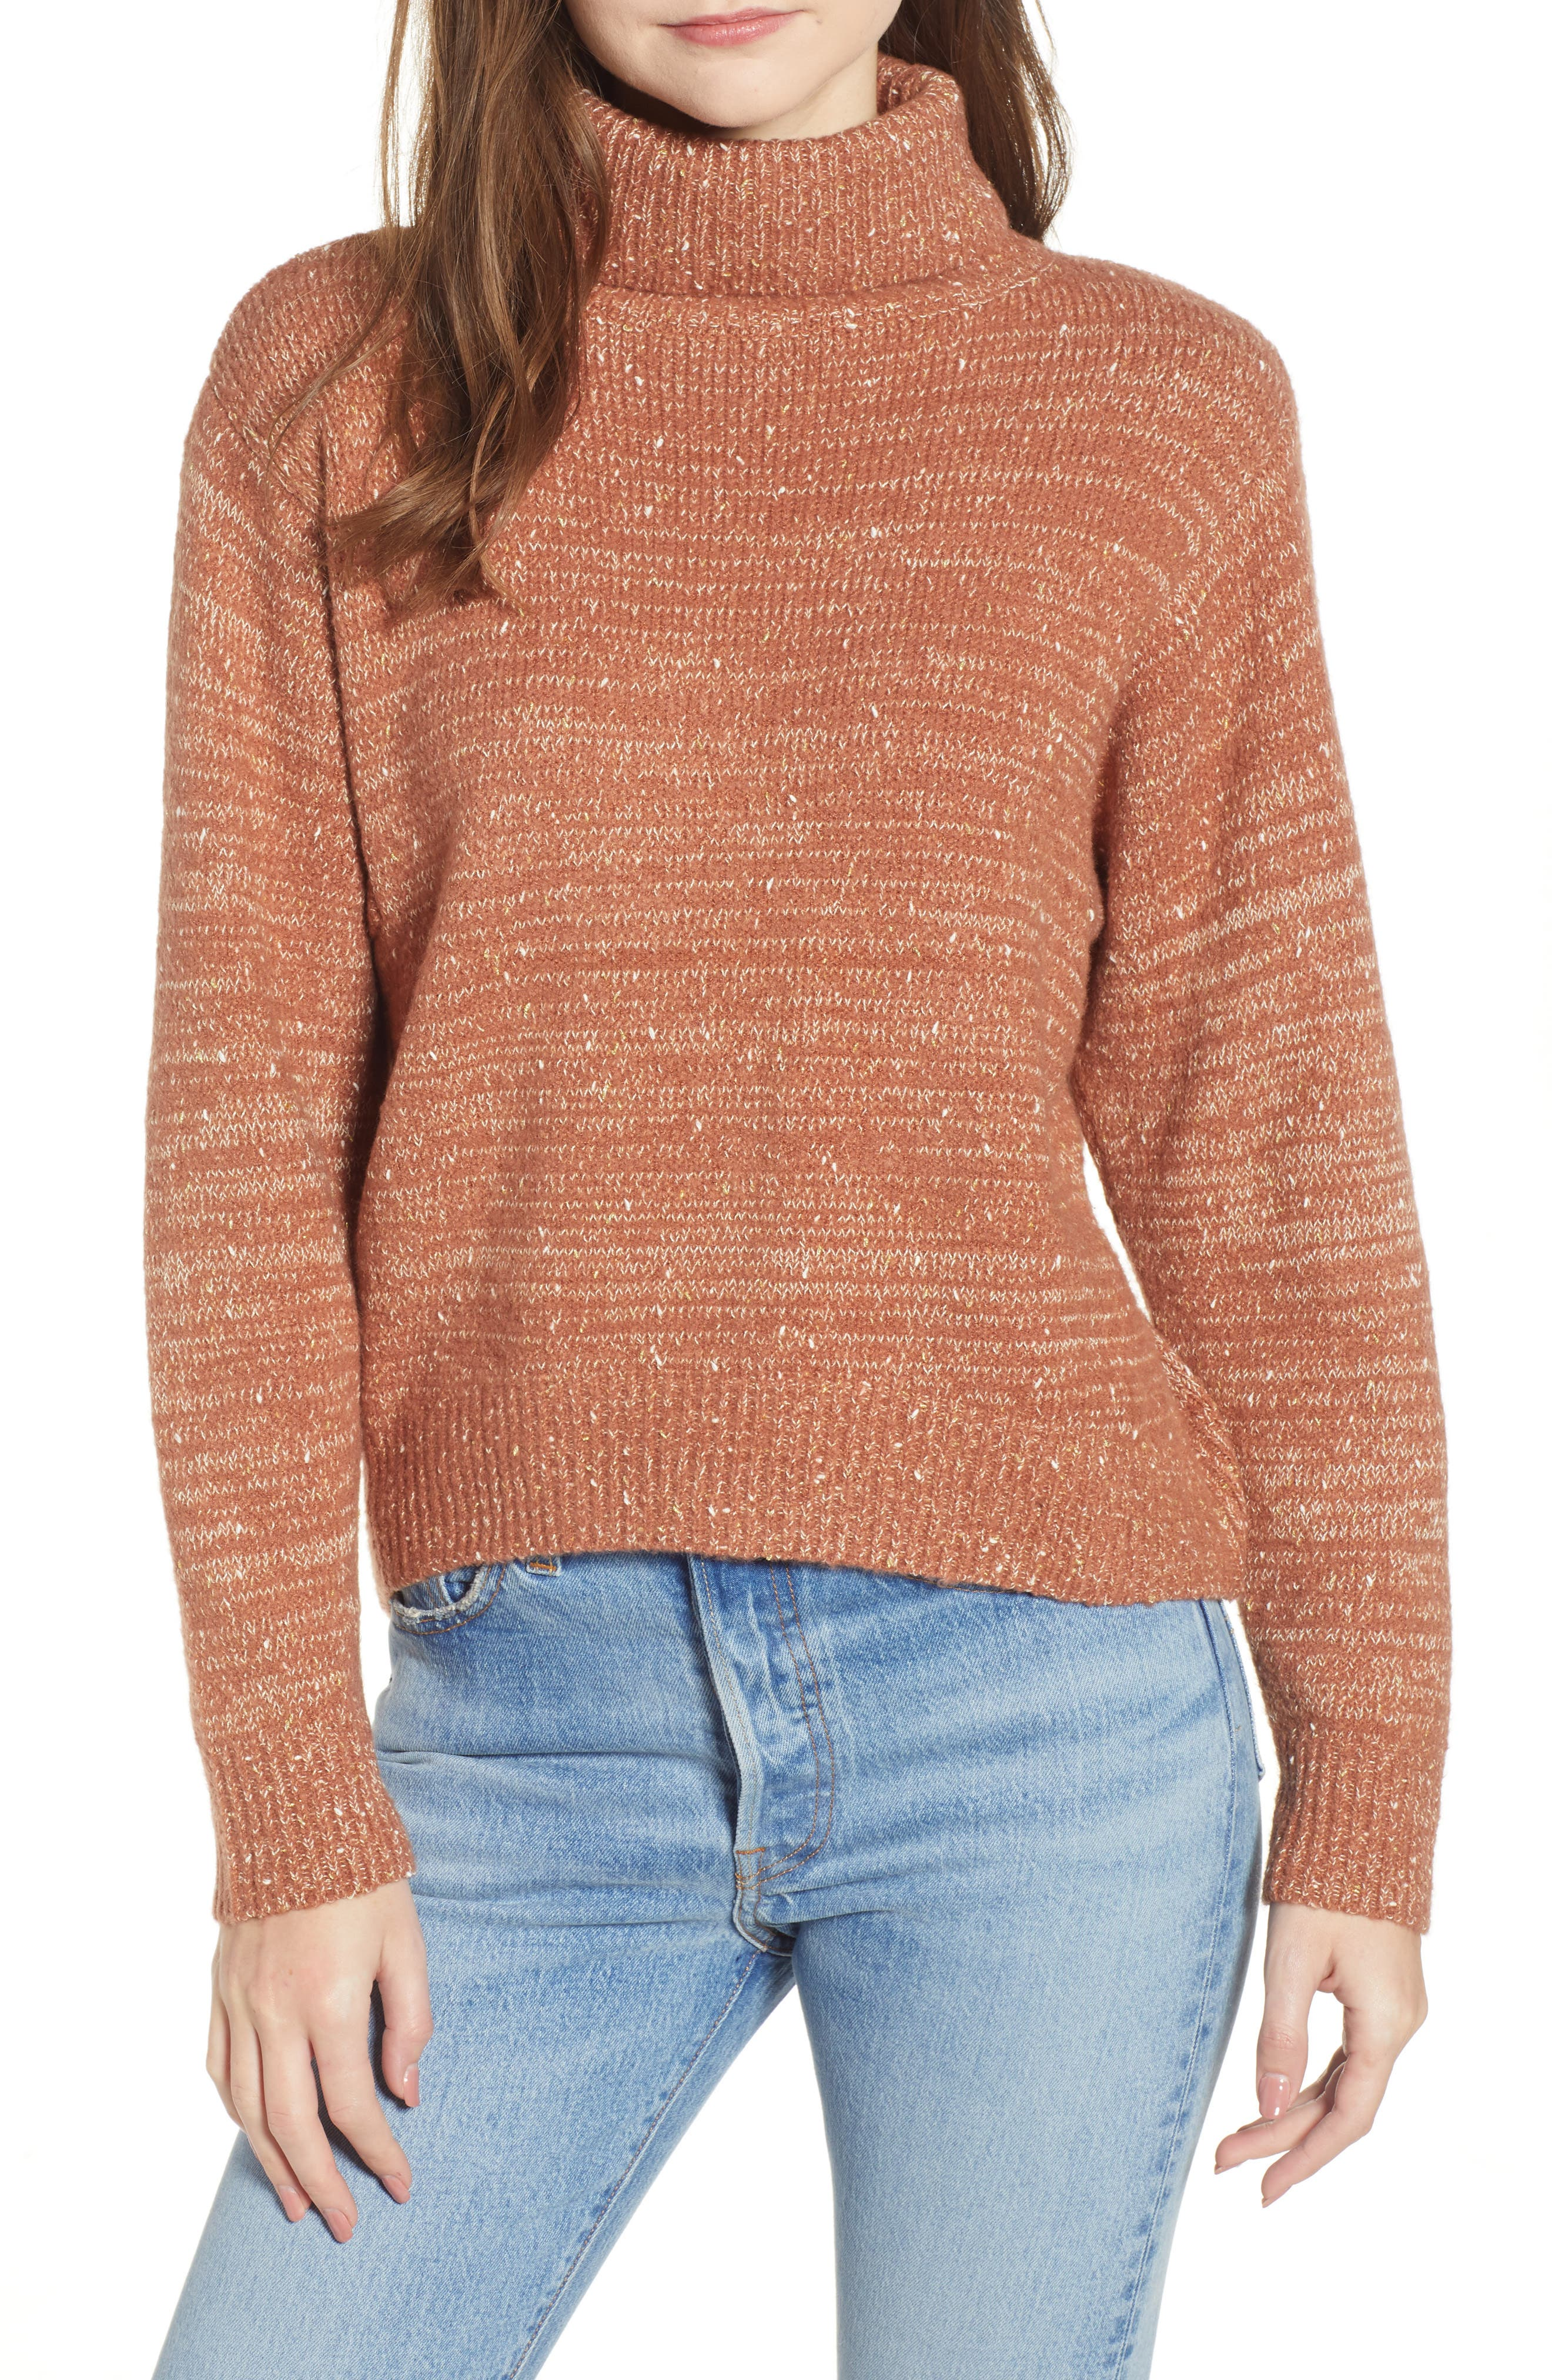 MOON RIVER Fleck Turtleneck Sweater in Honey